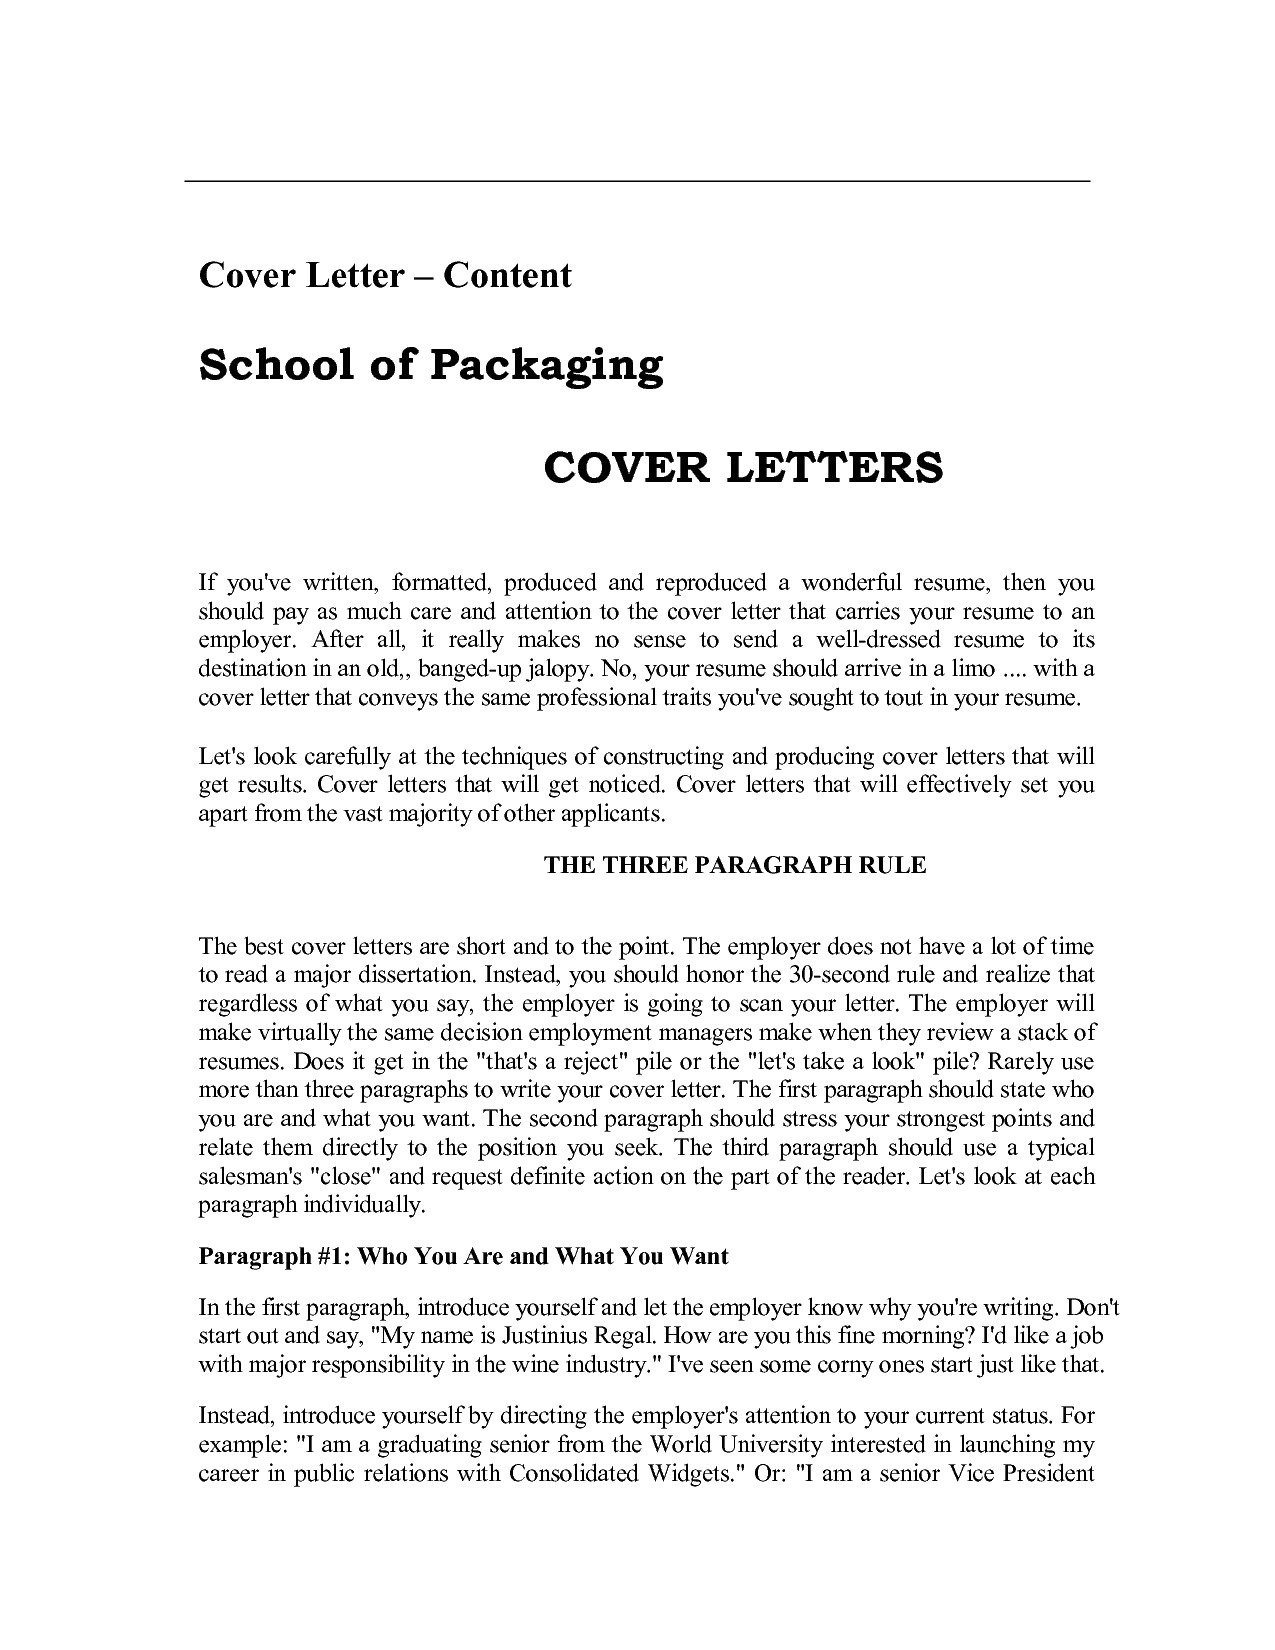 How to Write A Cover Letter Monash Monash University Cover Letter Samples